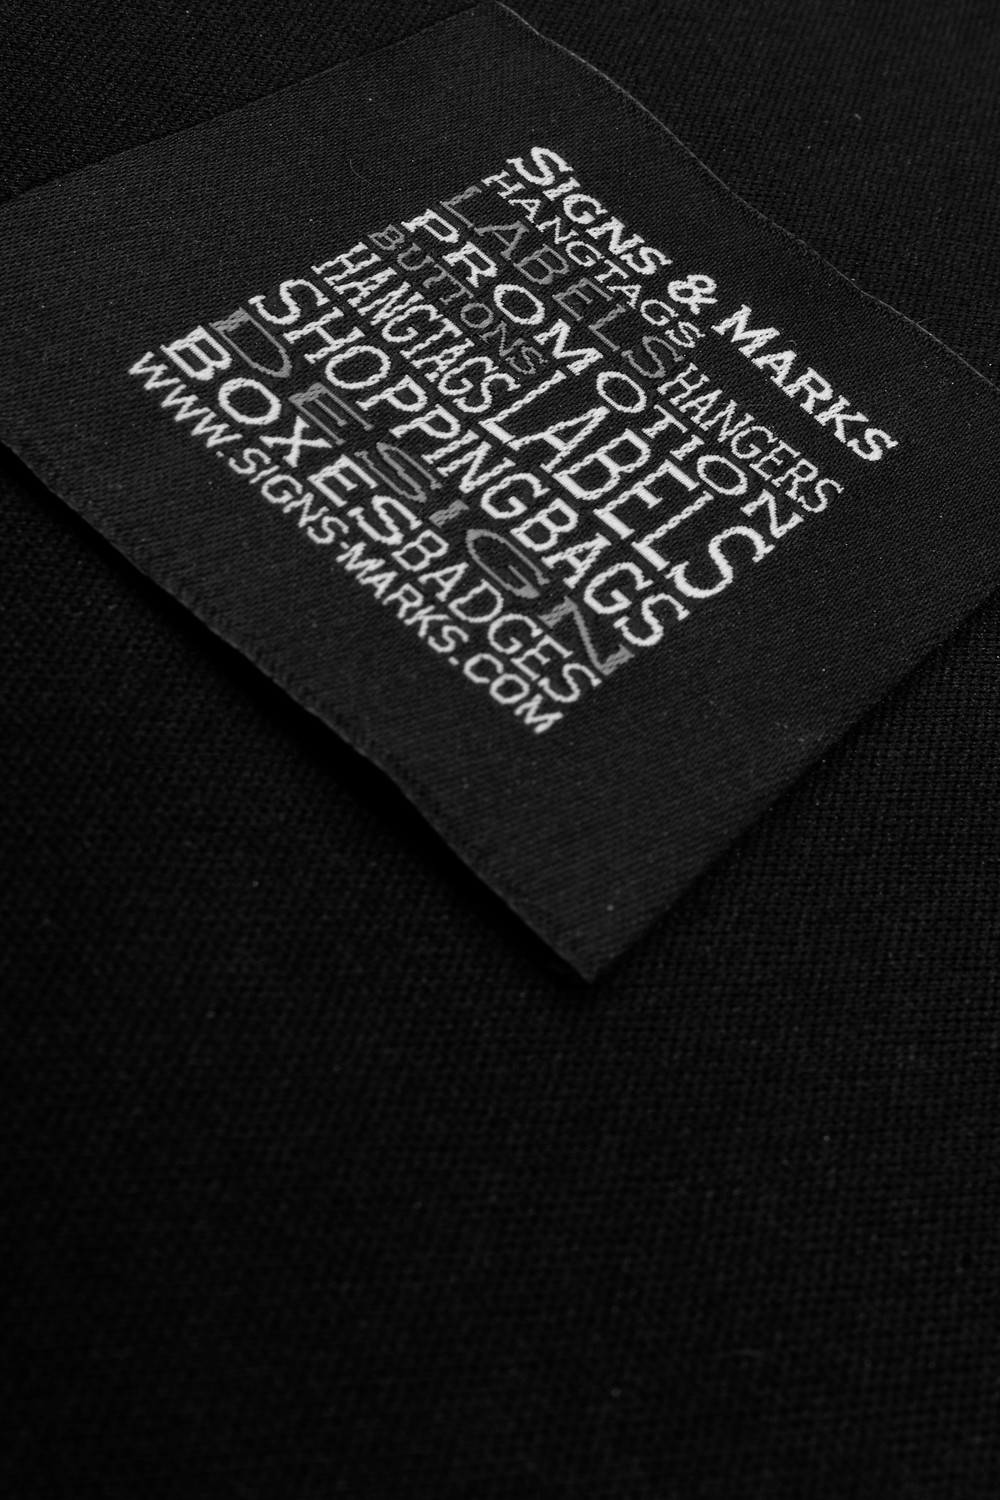 Signs & Marks - Hangtags, Labels, buttons, Design, Production...